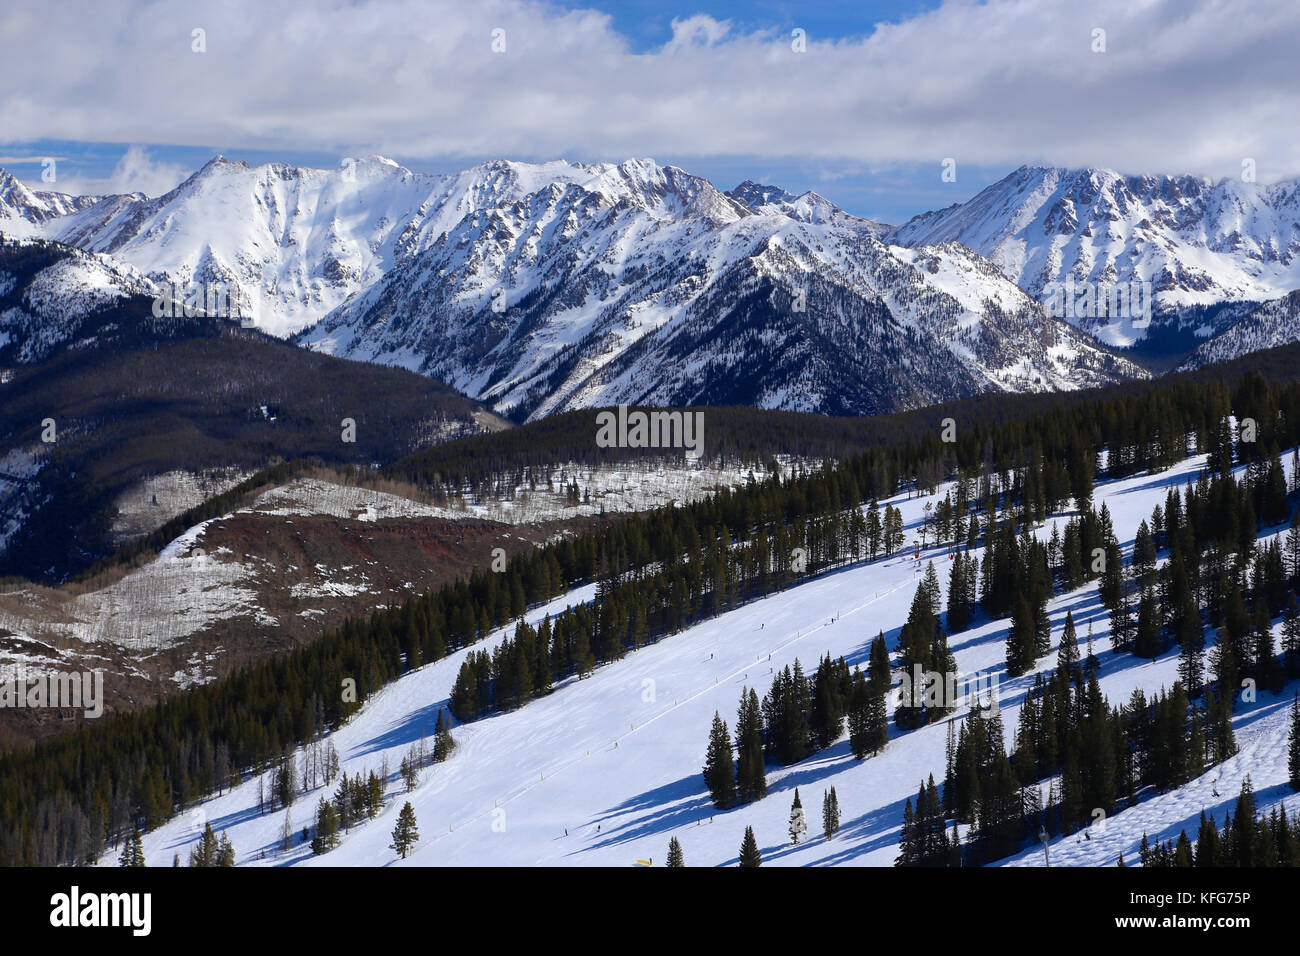 Vail Ski Resort In Winter In The Colorado Rocky Mountains   Stock Image